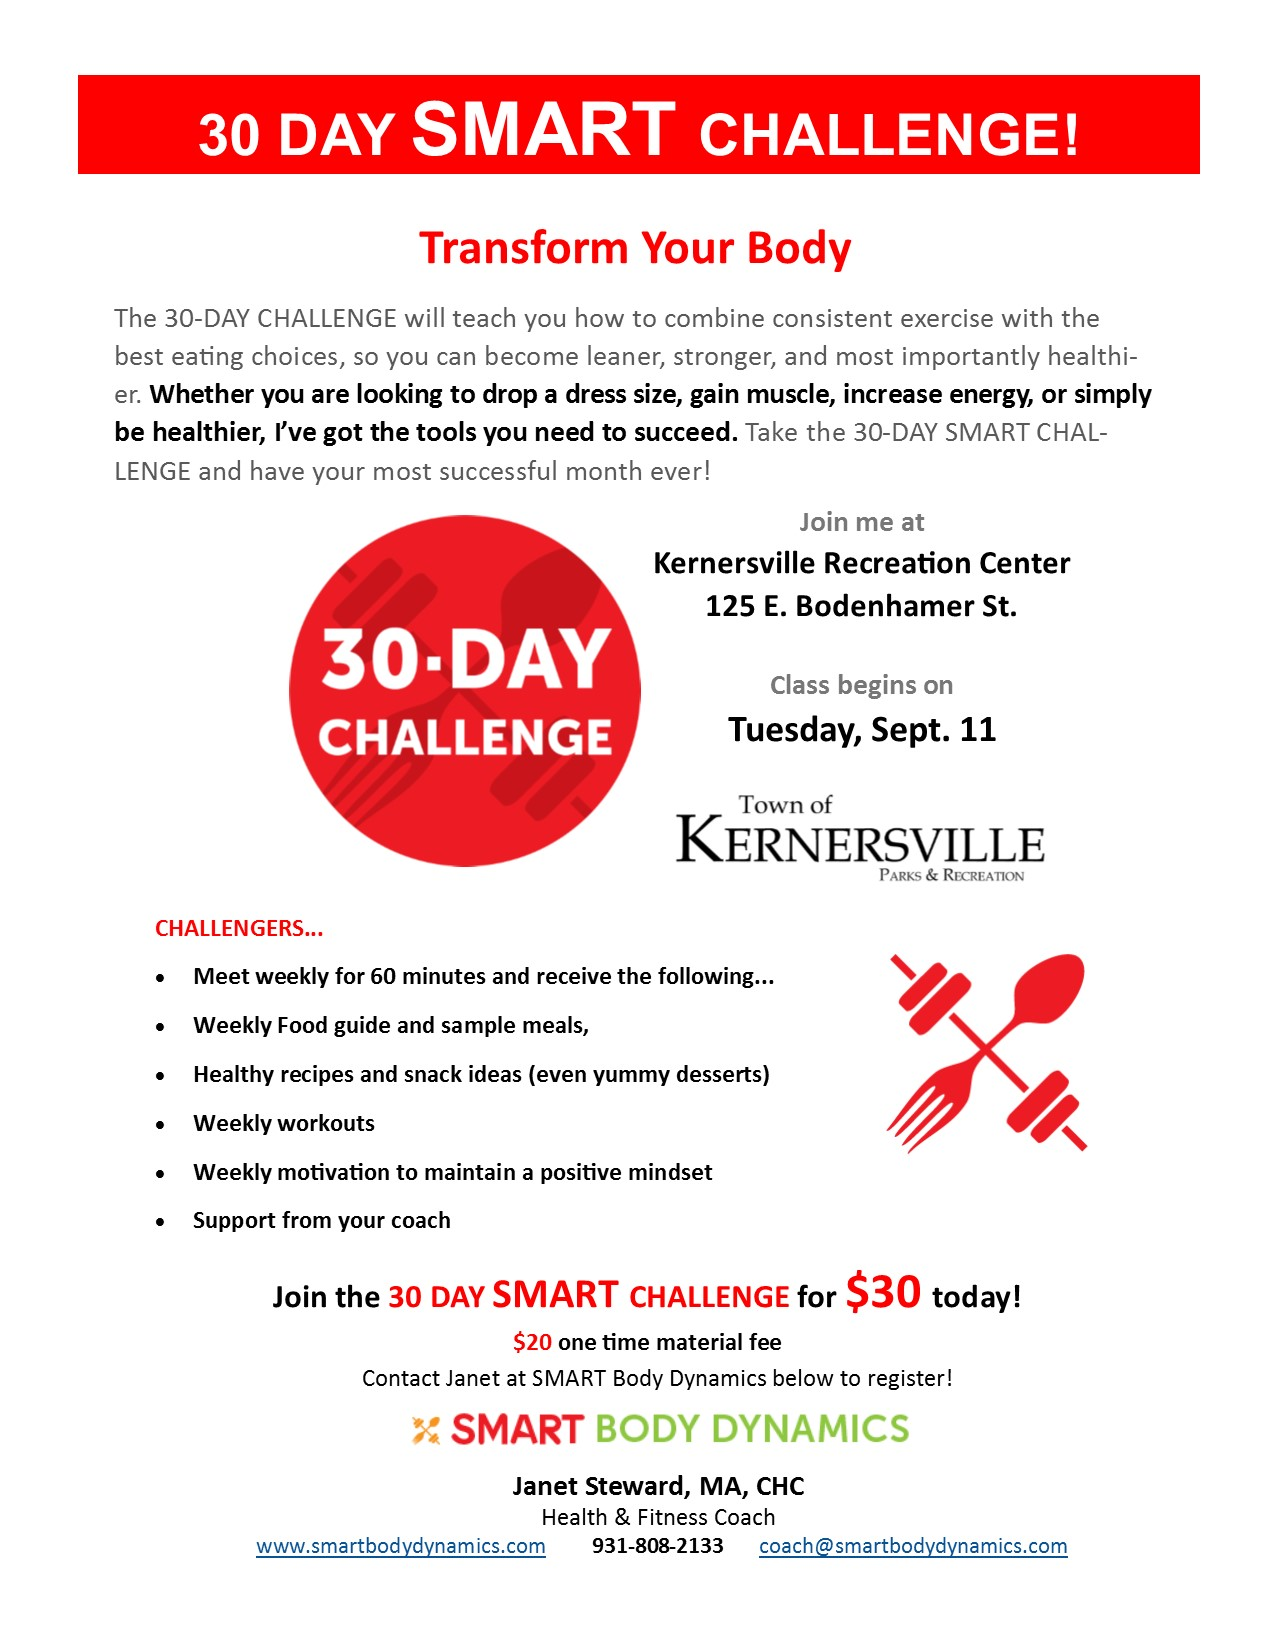 30-Day SMART Challenge